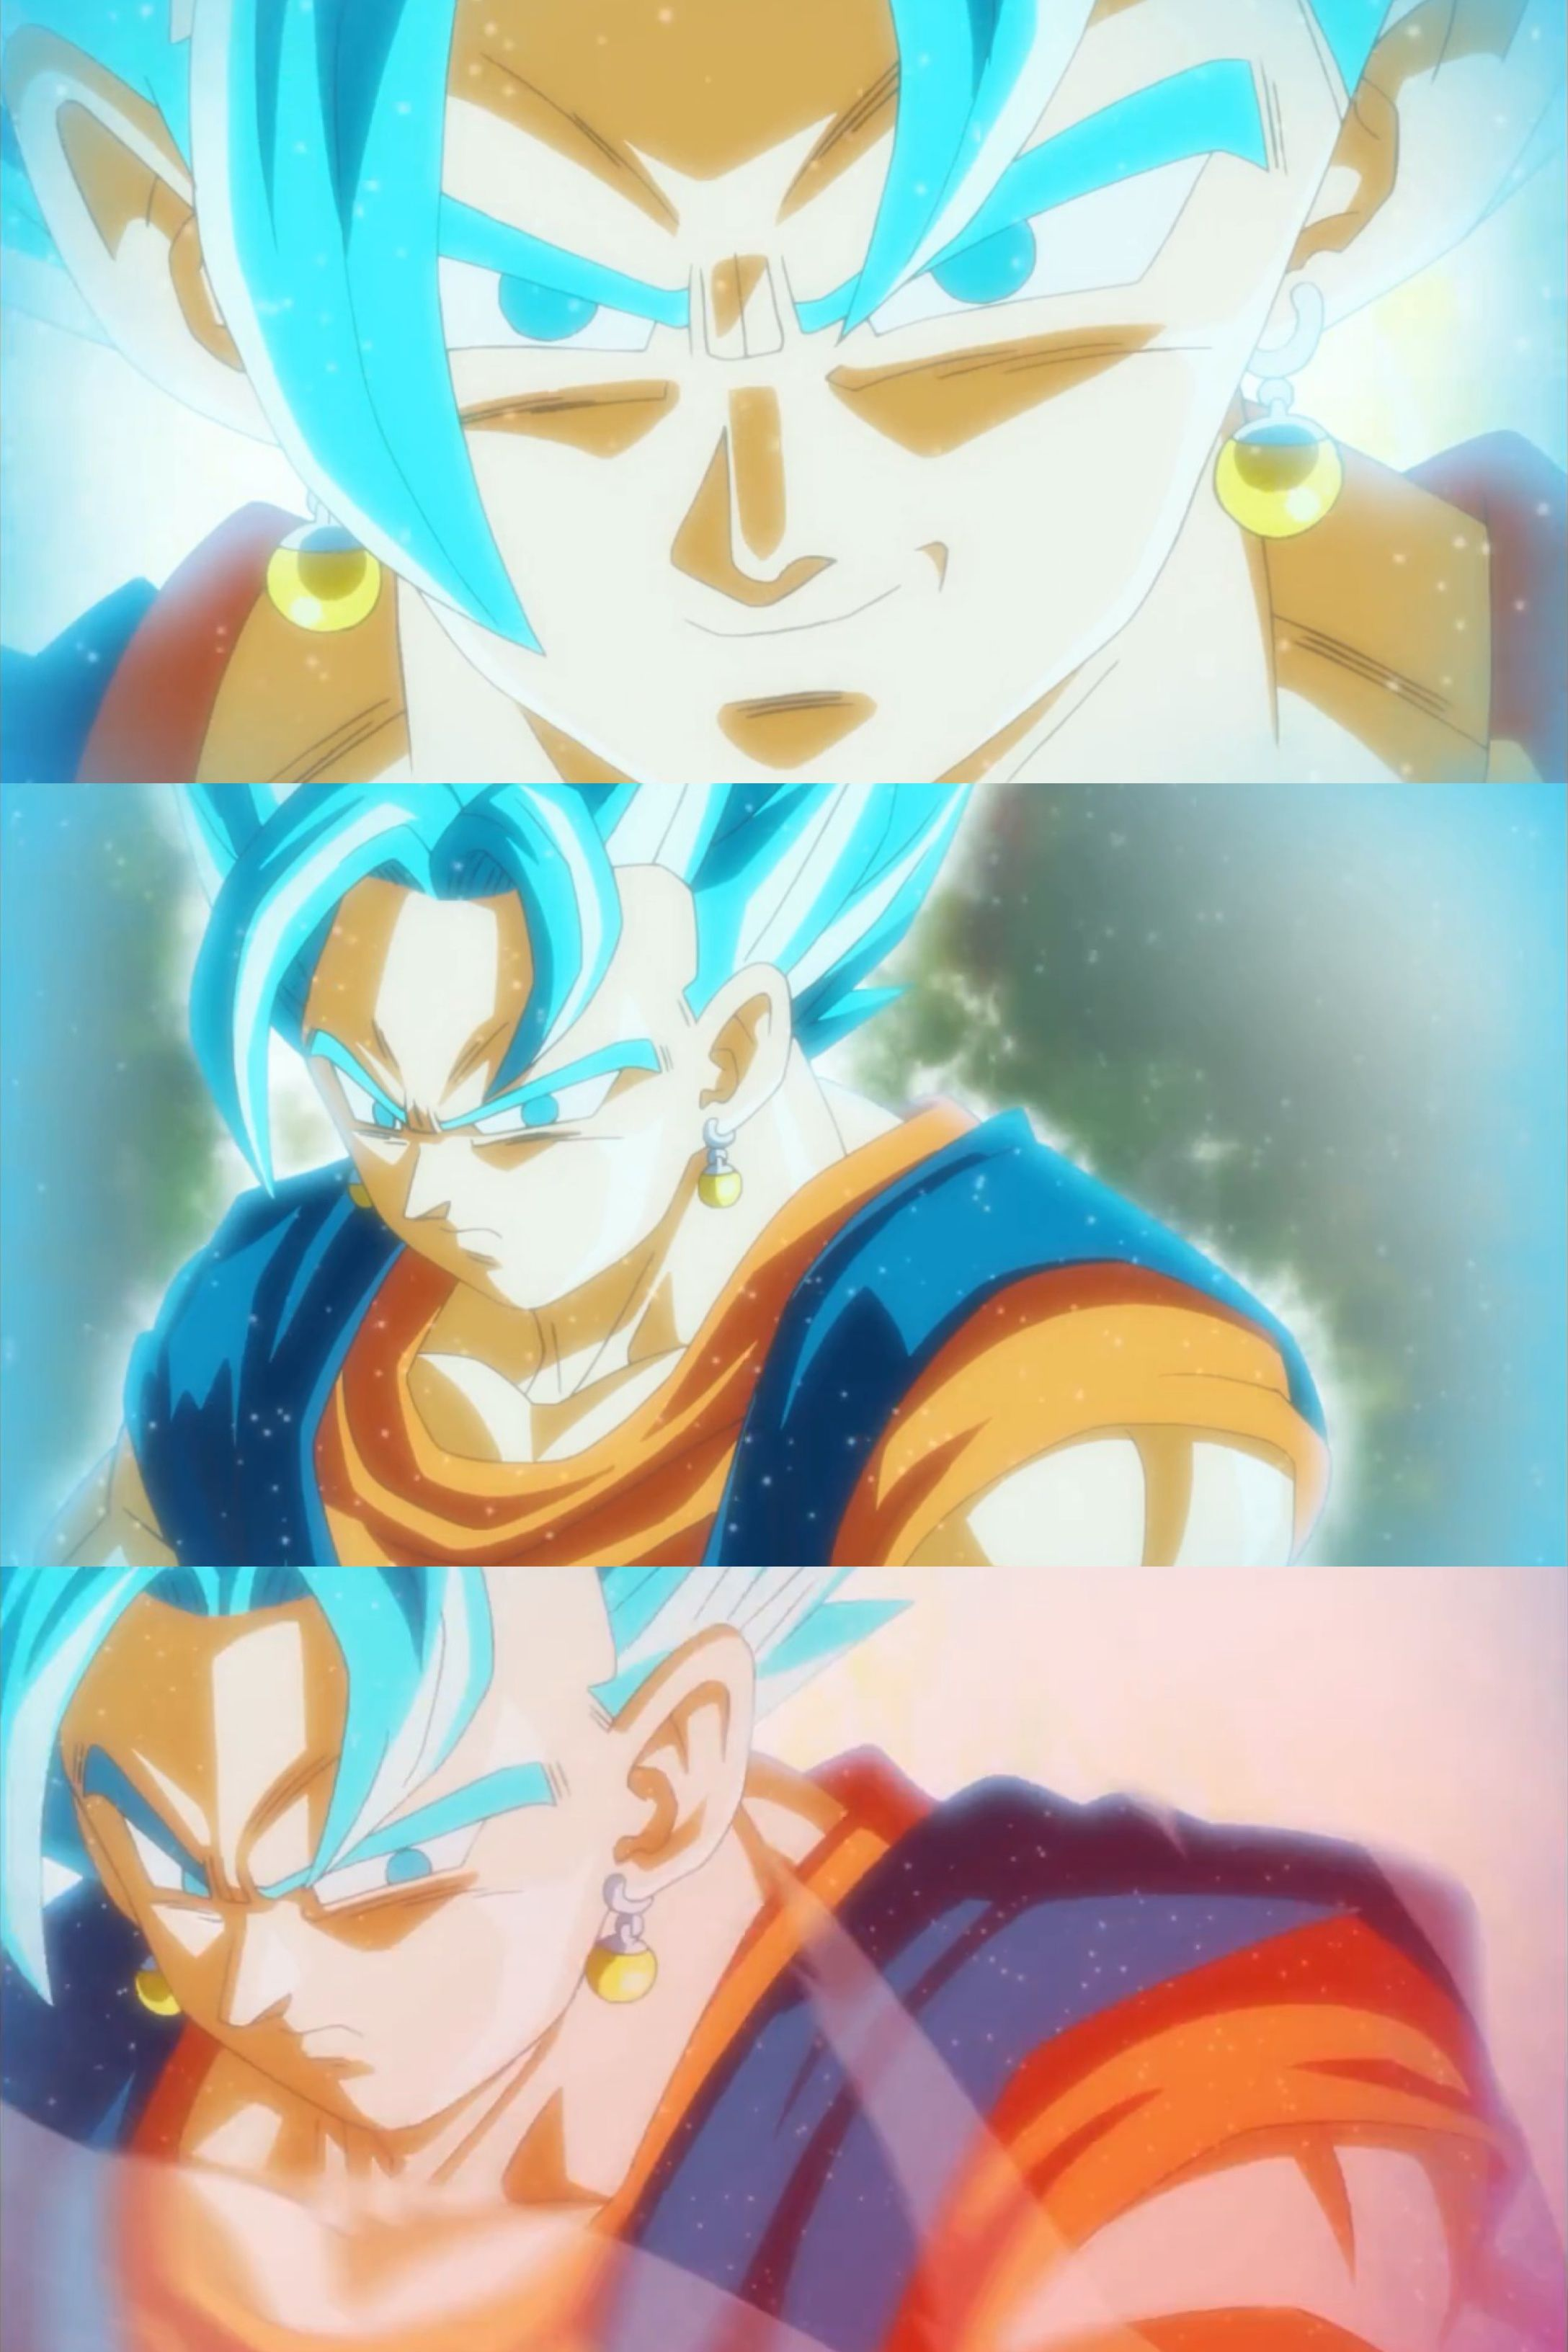 Dragon Ball Super Iphone Wallpaper For Your Enjoyment Collage Made With Moldiv App